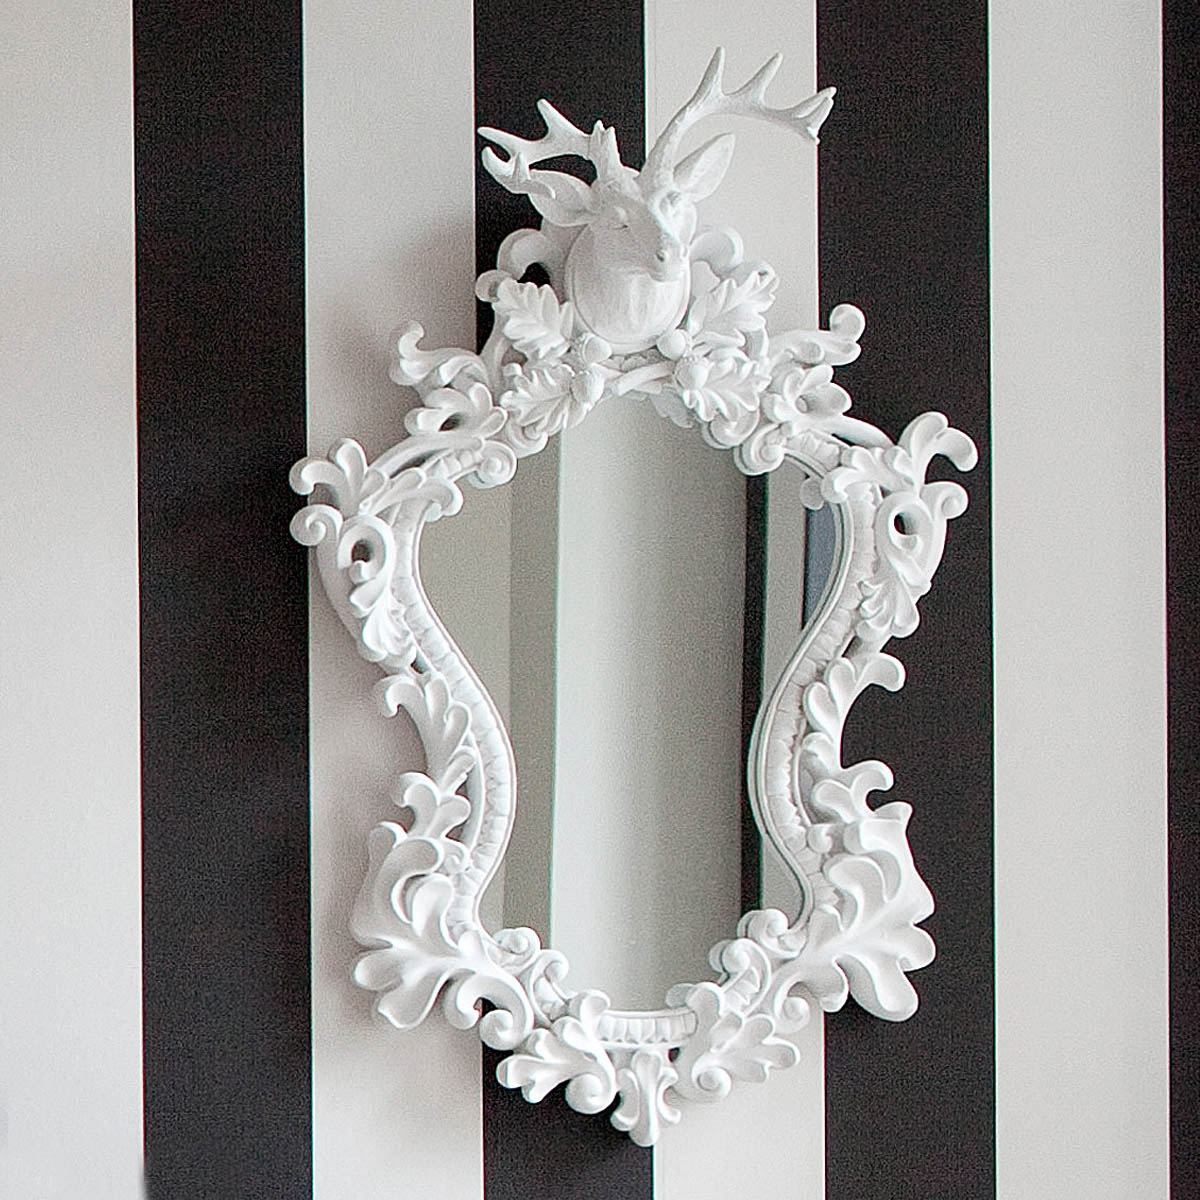 Large White Mirrors For Walls Mirror Design Ideas Within Pretty Mirrors For Walls (Image 9 of 15)